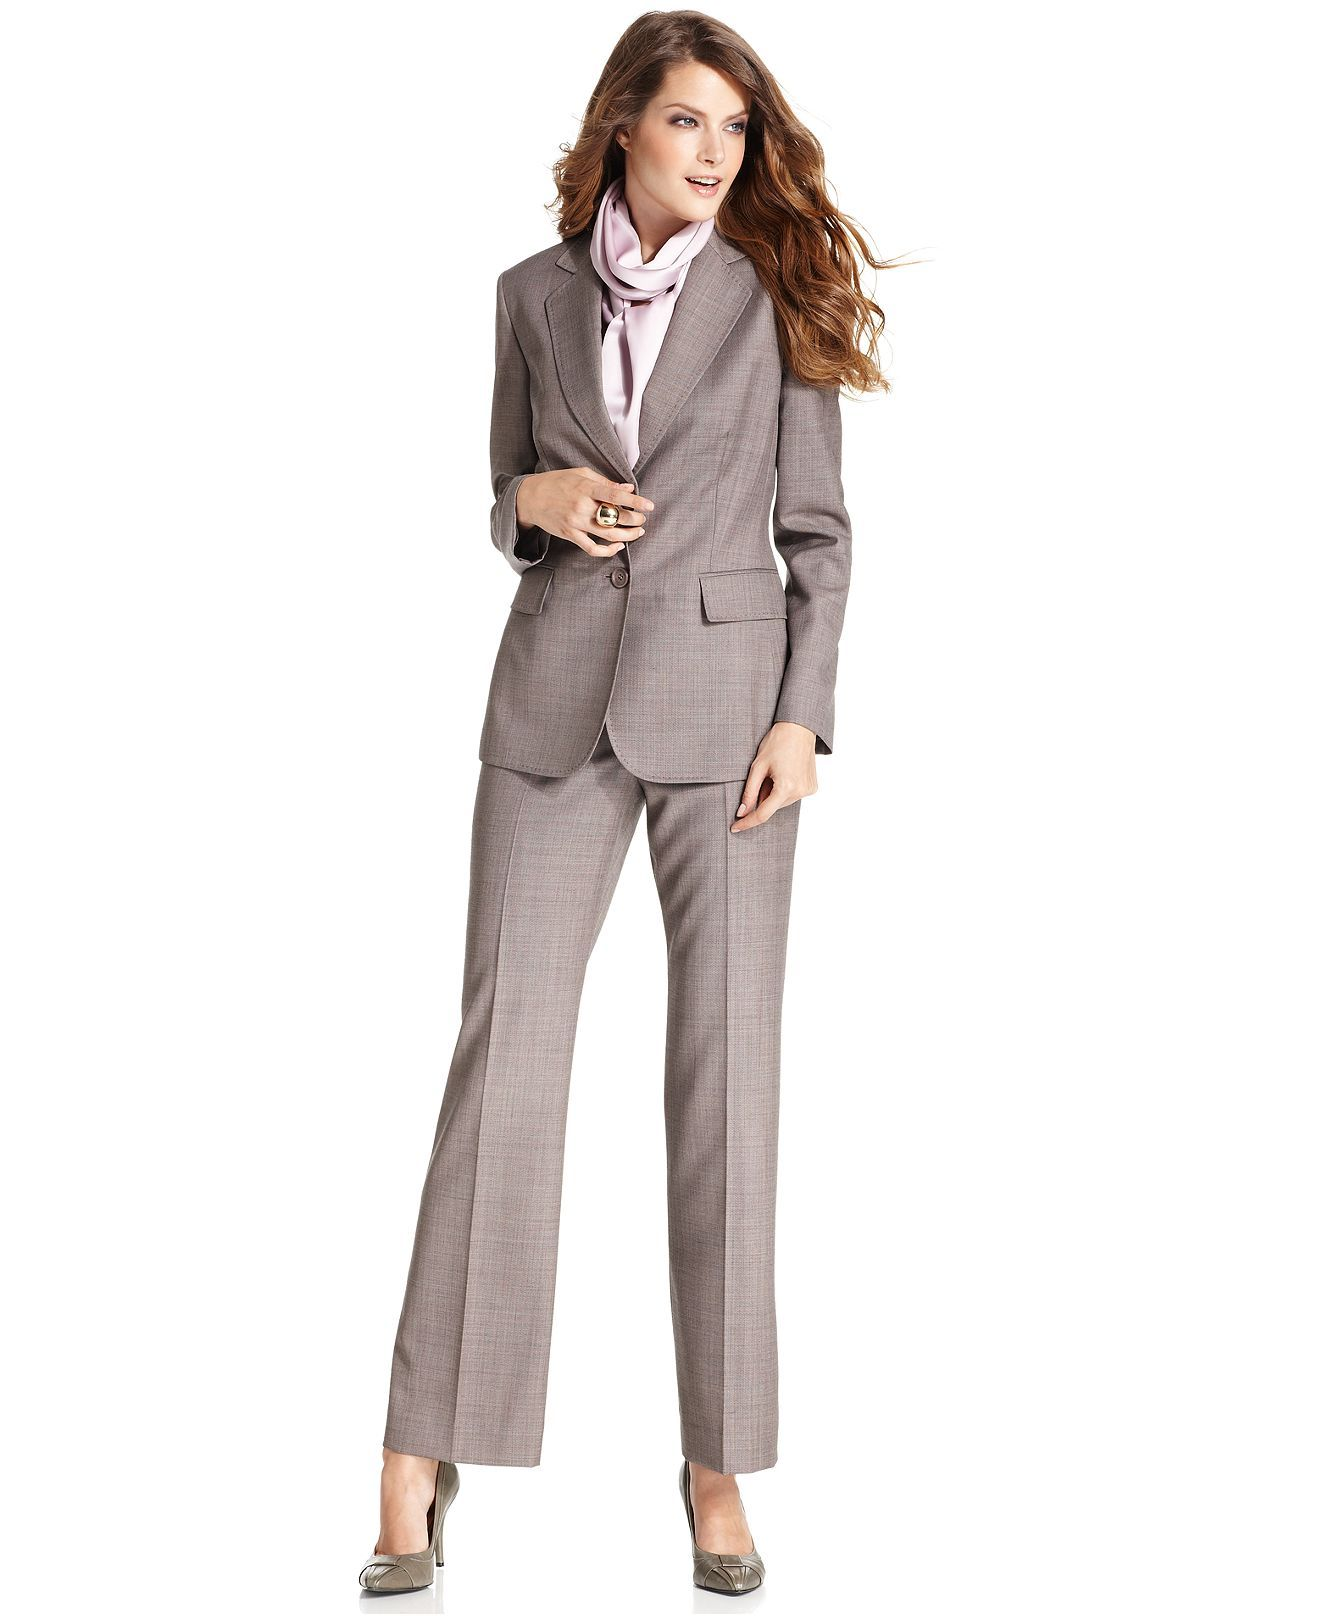 10ea9be4a690a Katharine suit idea at Macy s--Anne Klein Suit